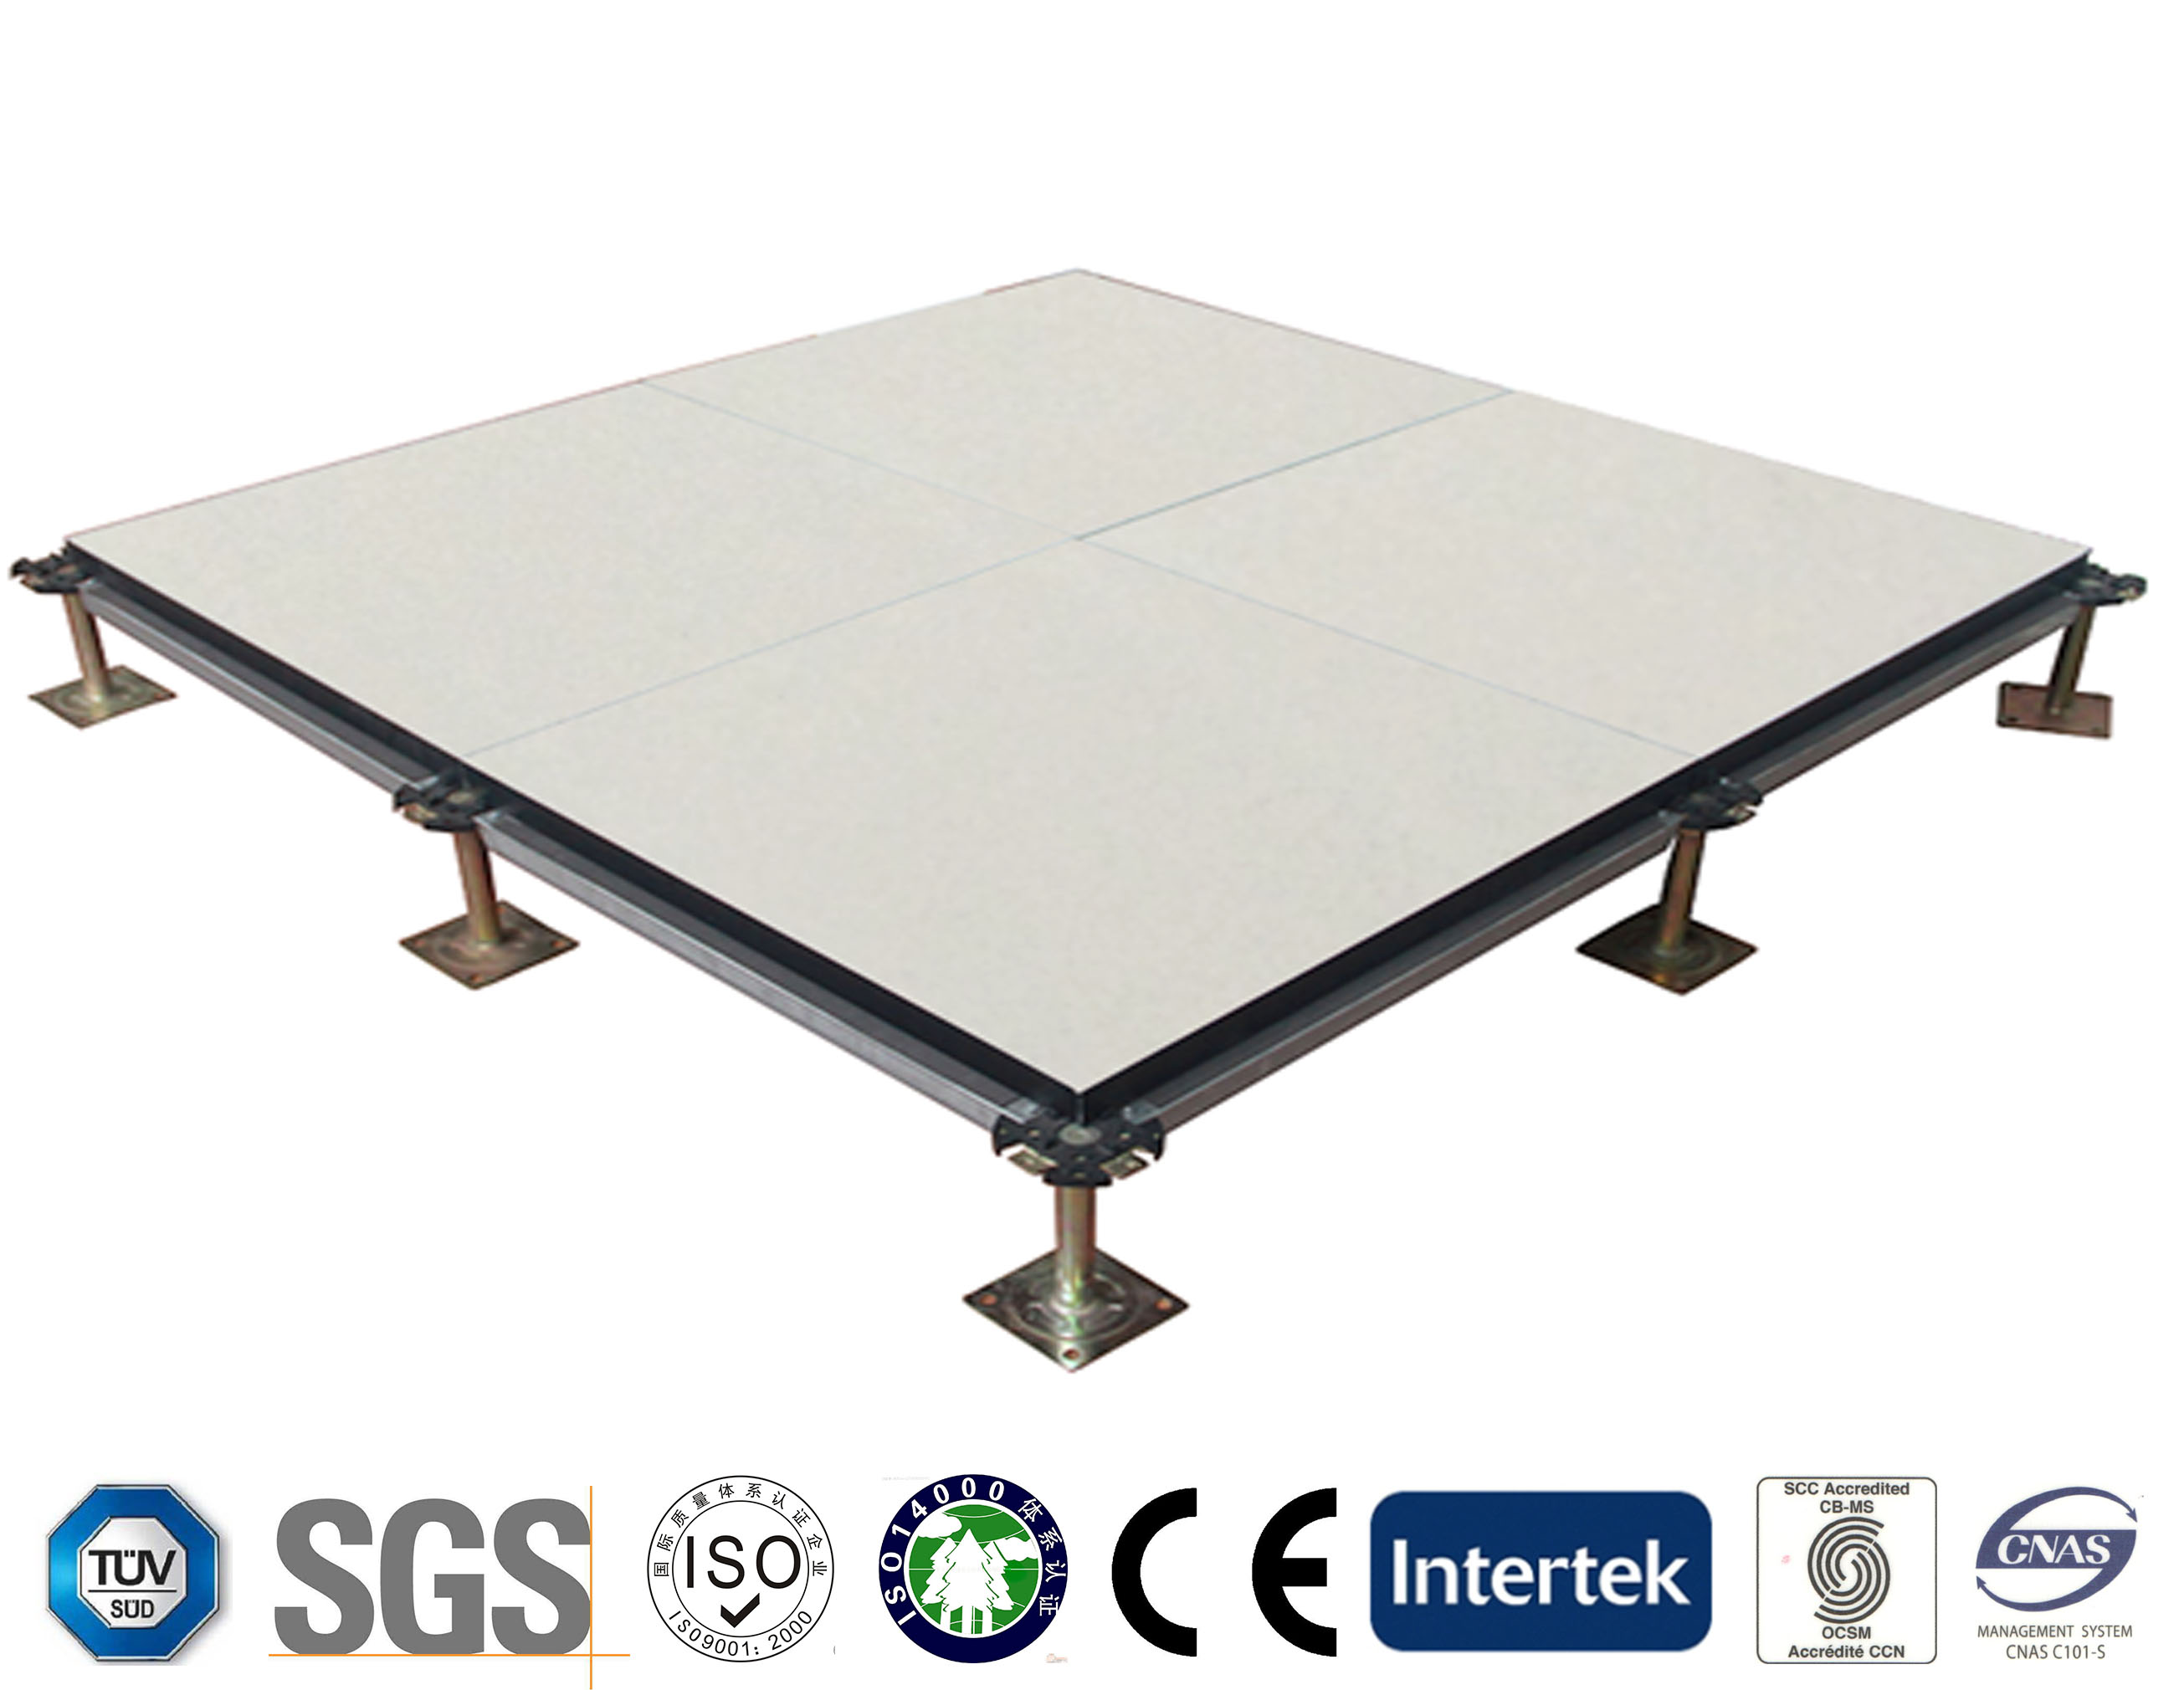 Calcium Sulphate Panels with Ceramic Finish